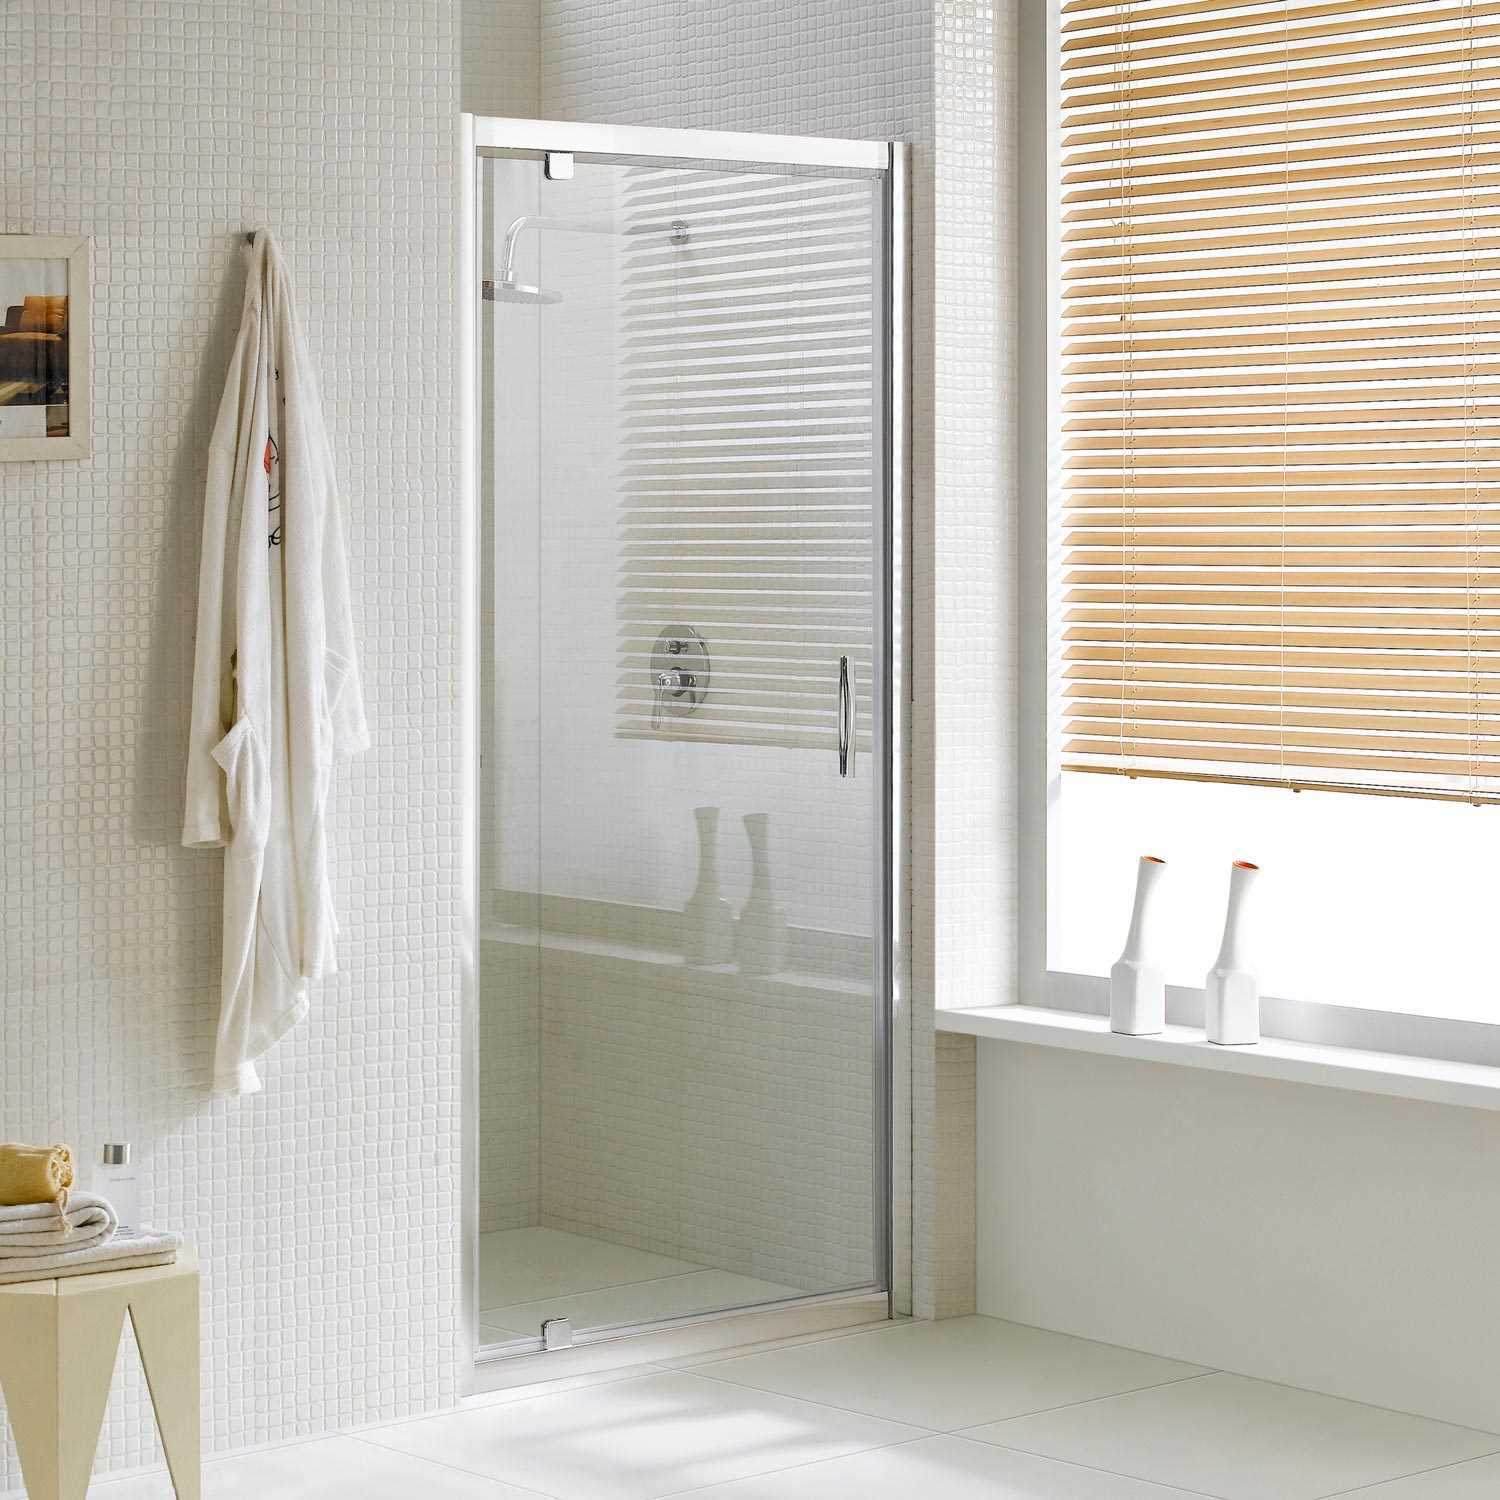 single-swing-shower-door-pr009-1_1543847428_837